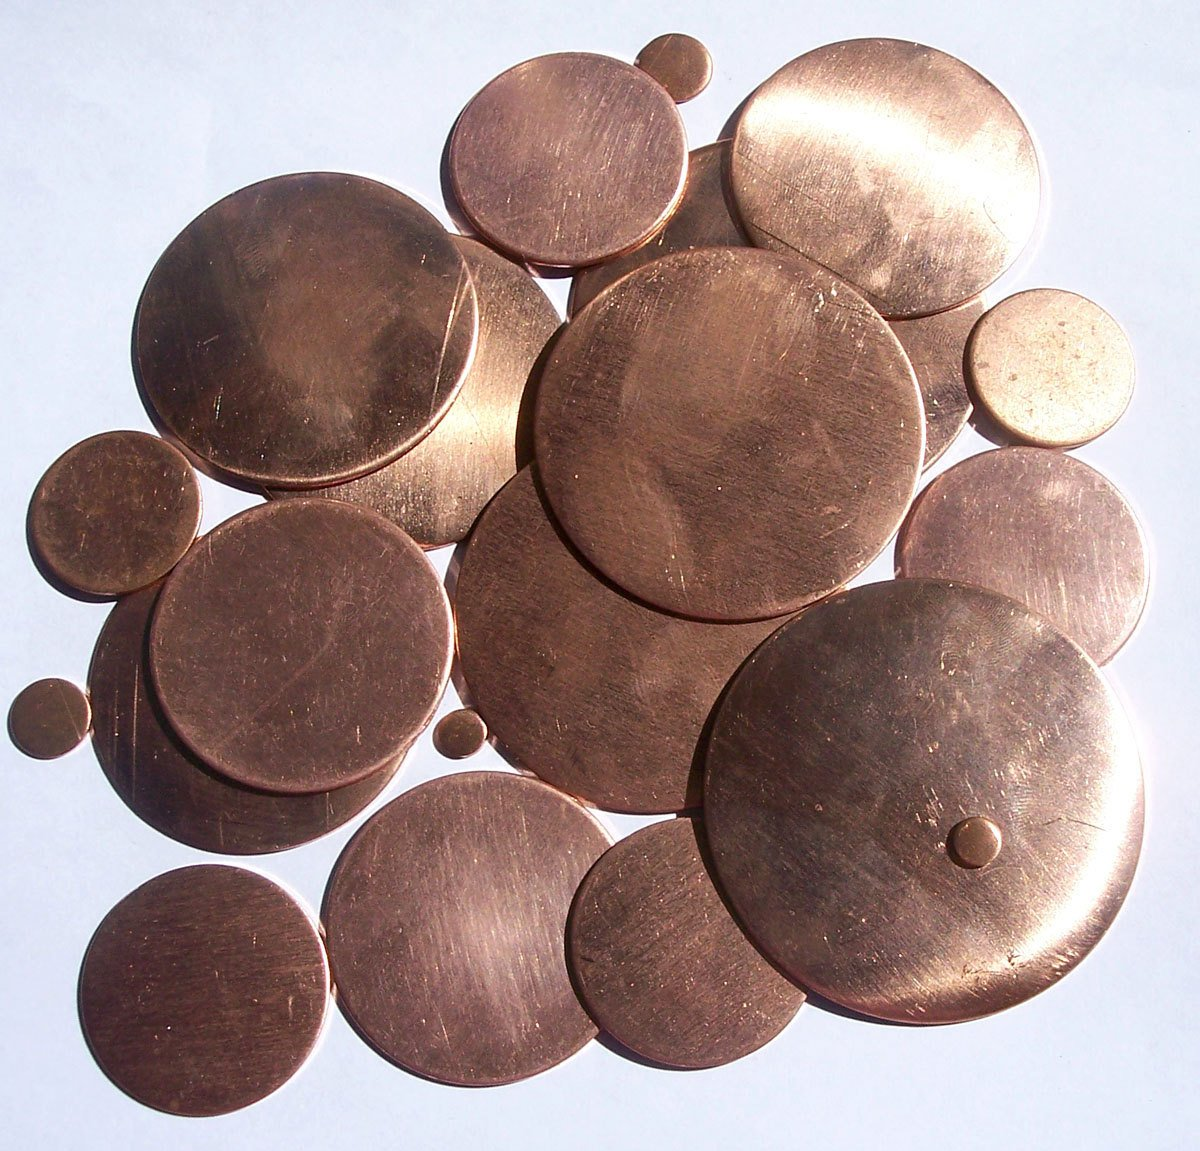 Round Stamping Blanks Copper Disc Blanks Cutout for Enameling Stamping Texturing - 14 pieces